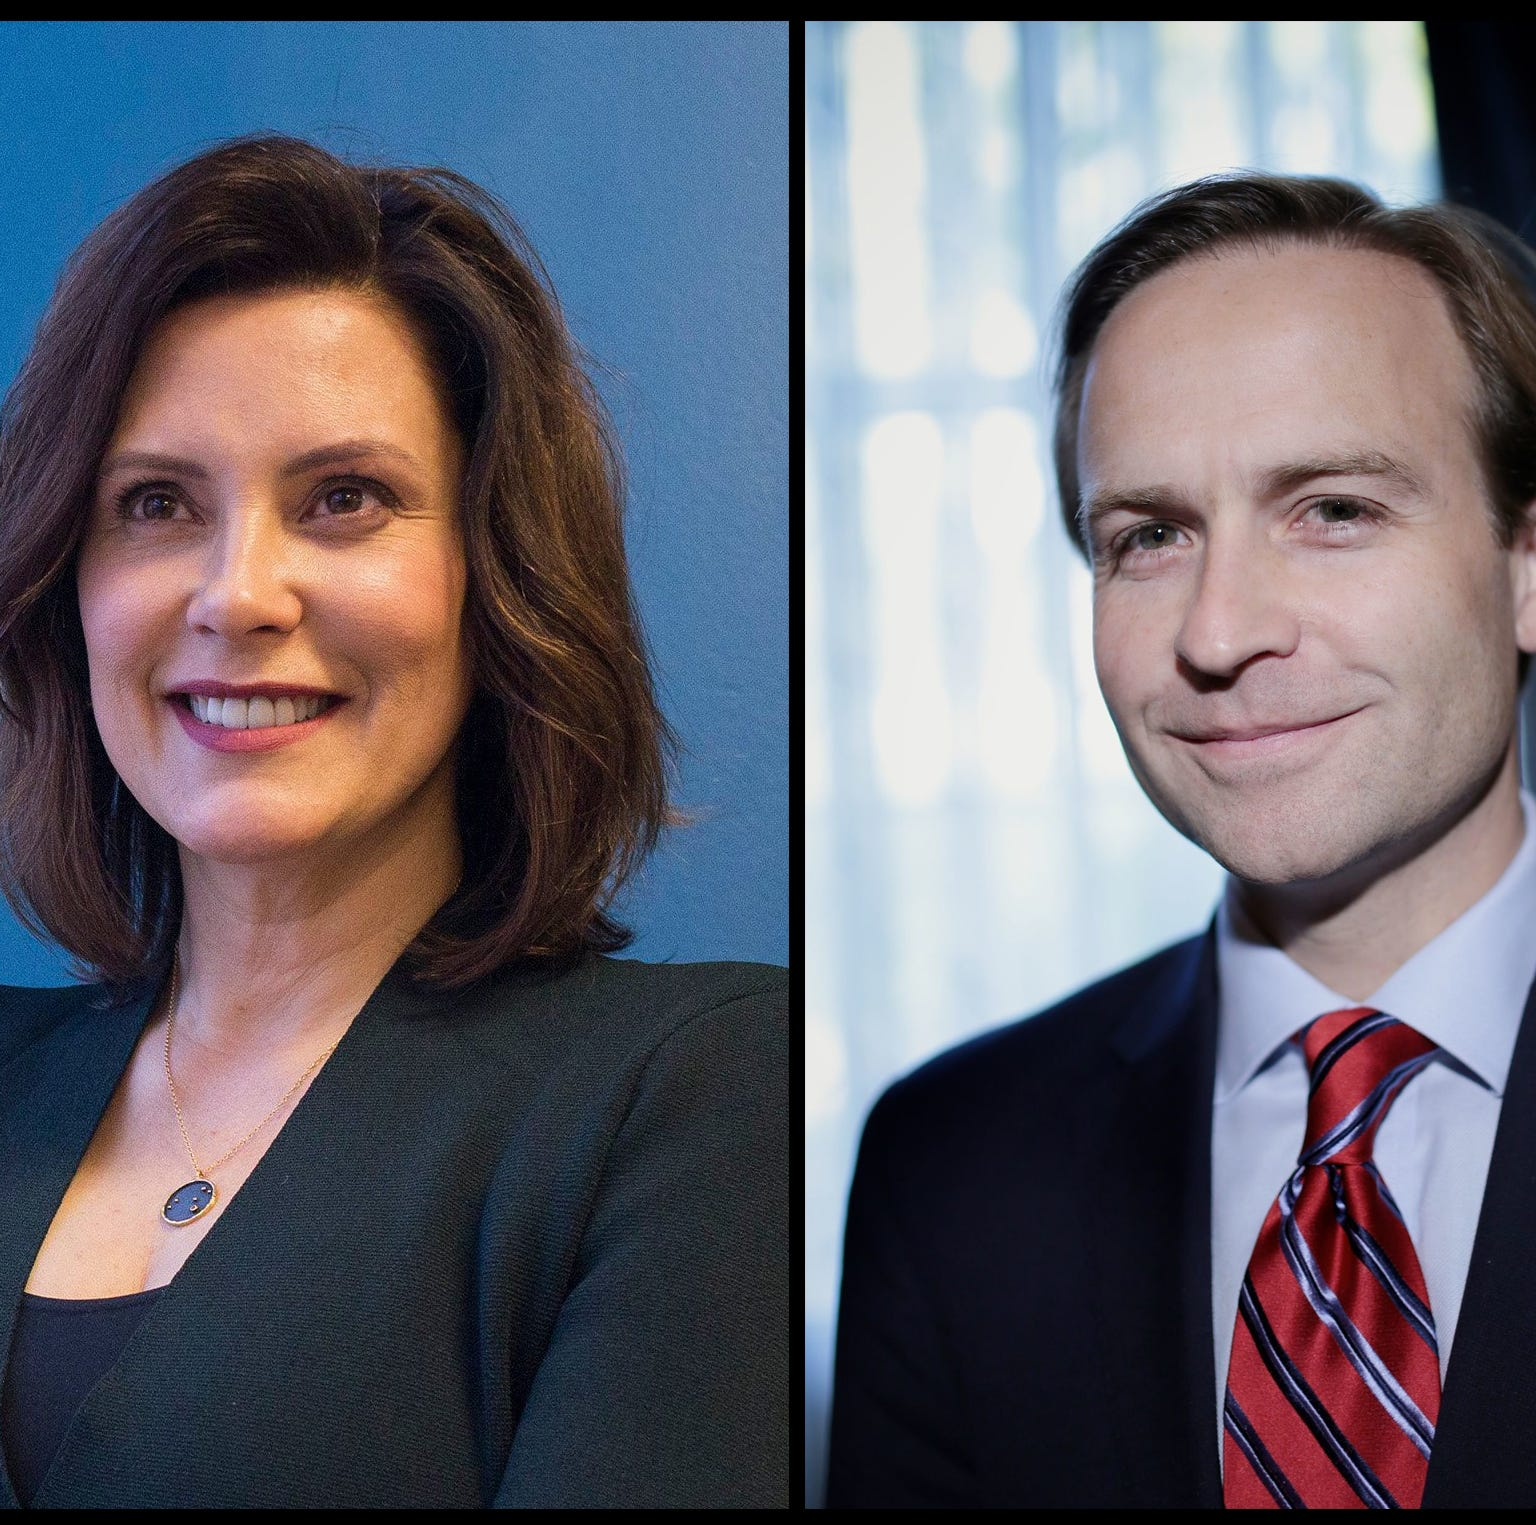 Gretchen Whitmer, right, and Brian Calley, left.